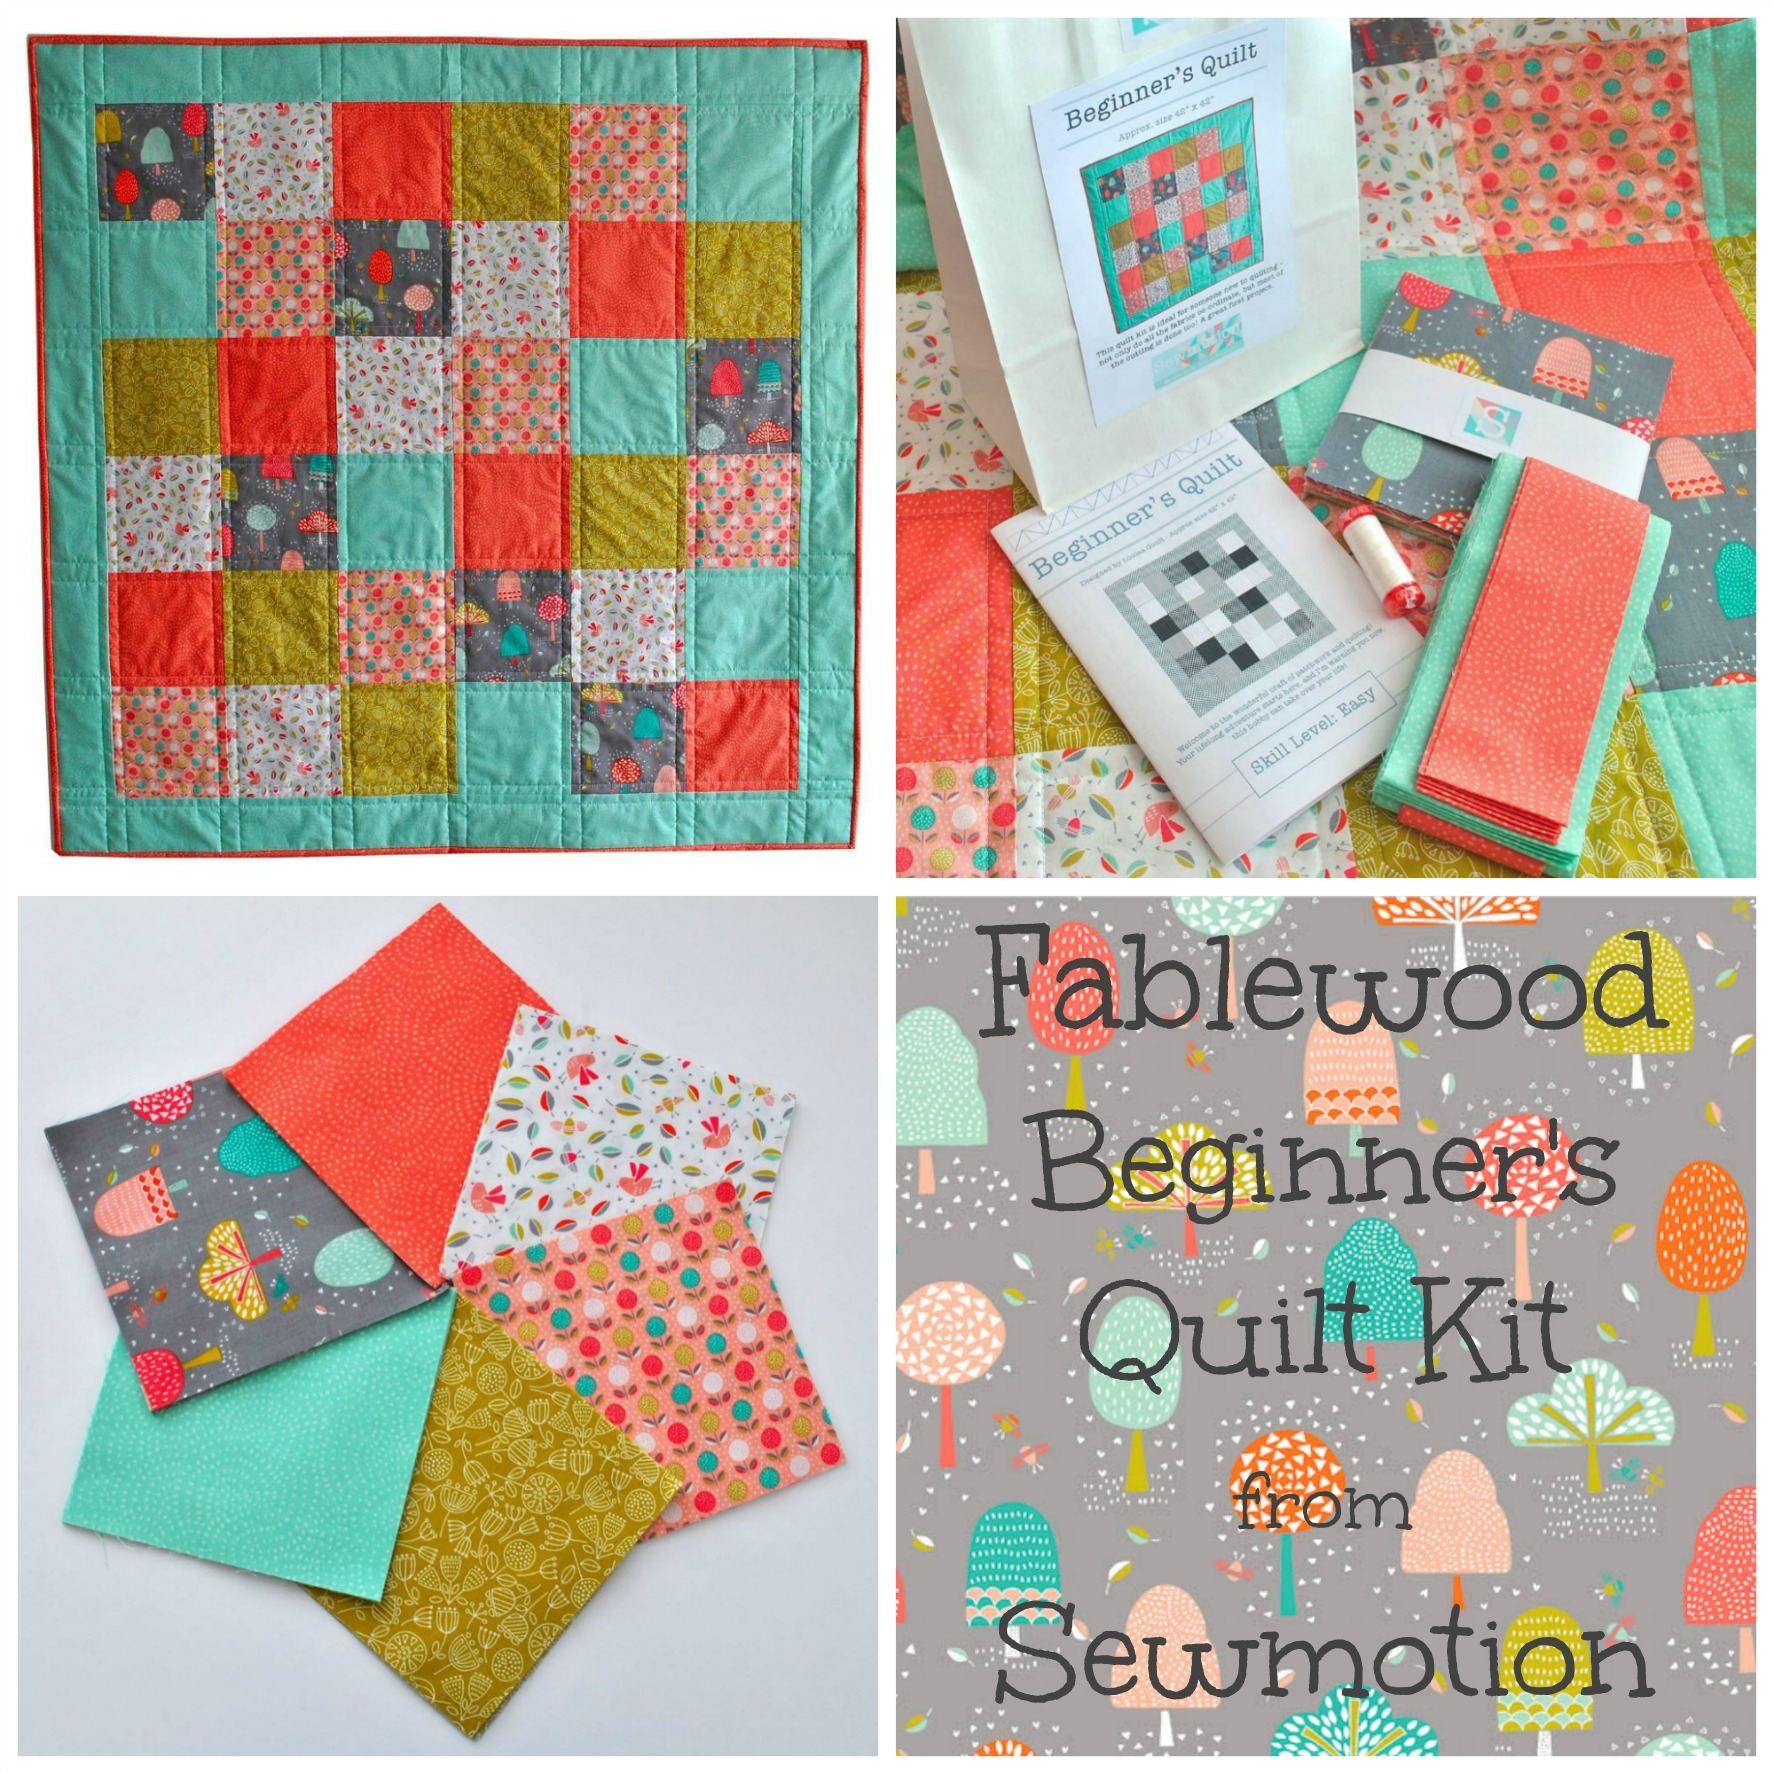 Beginner's Quilt Kit in Fablewood